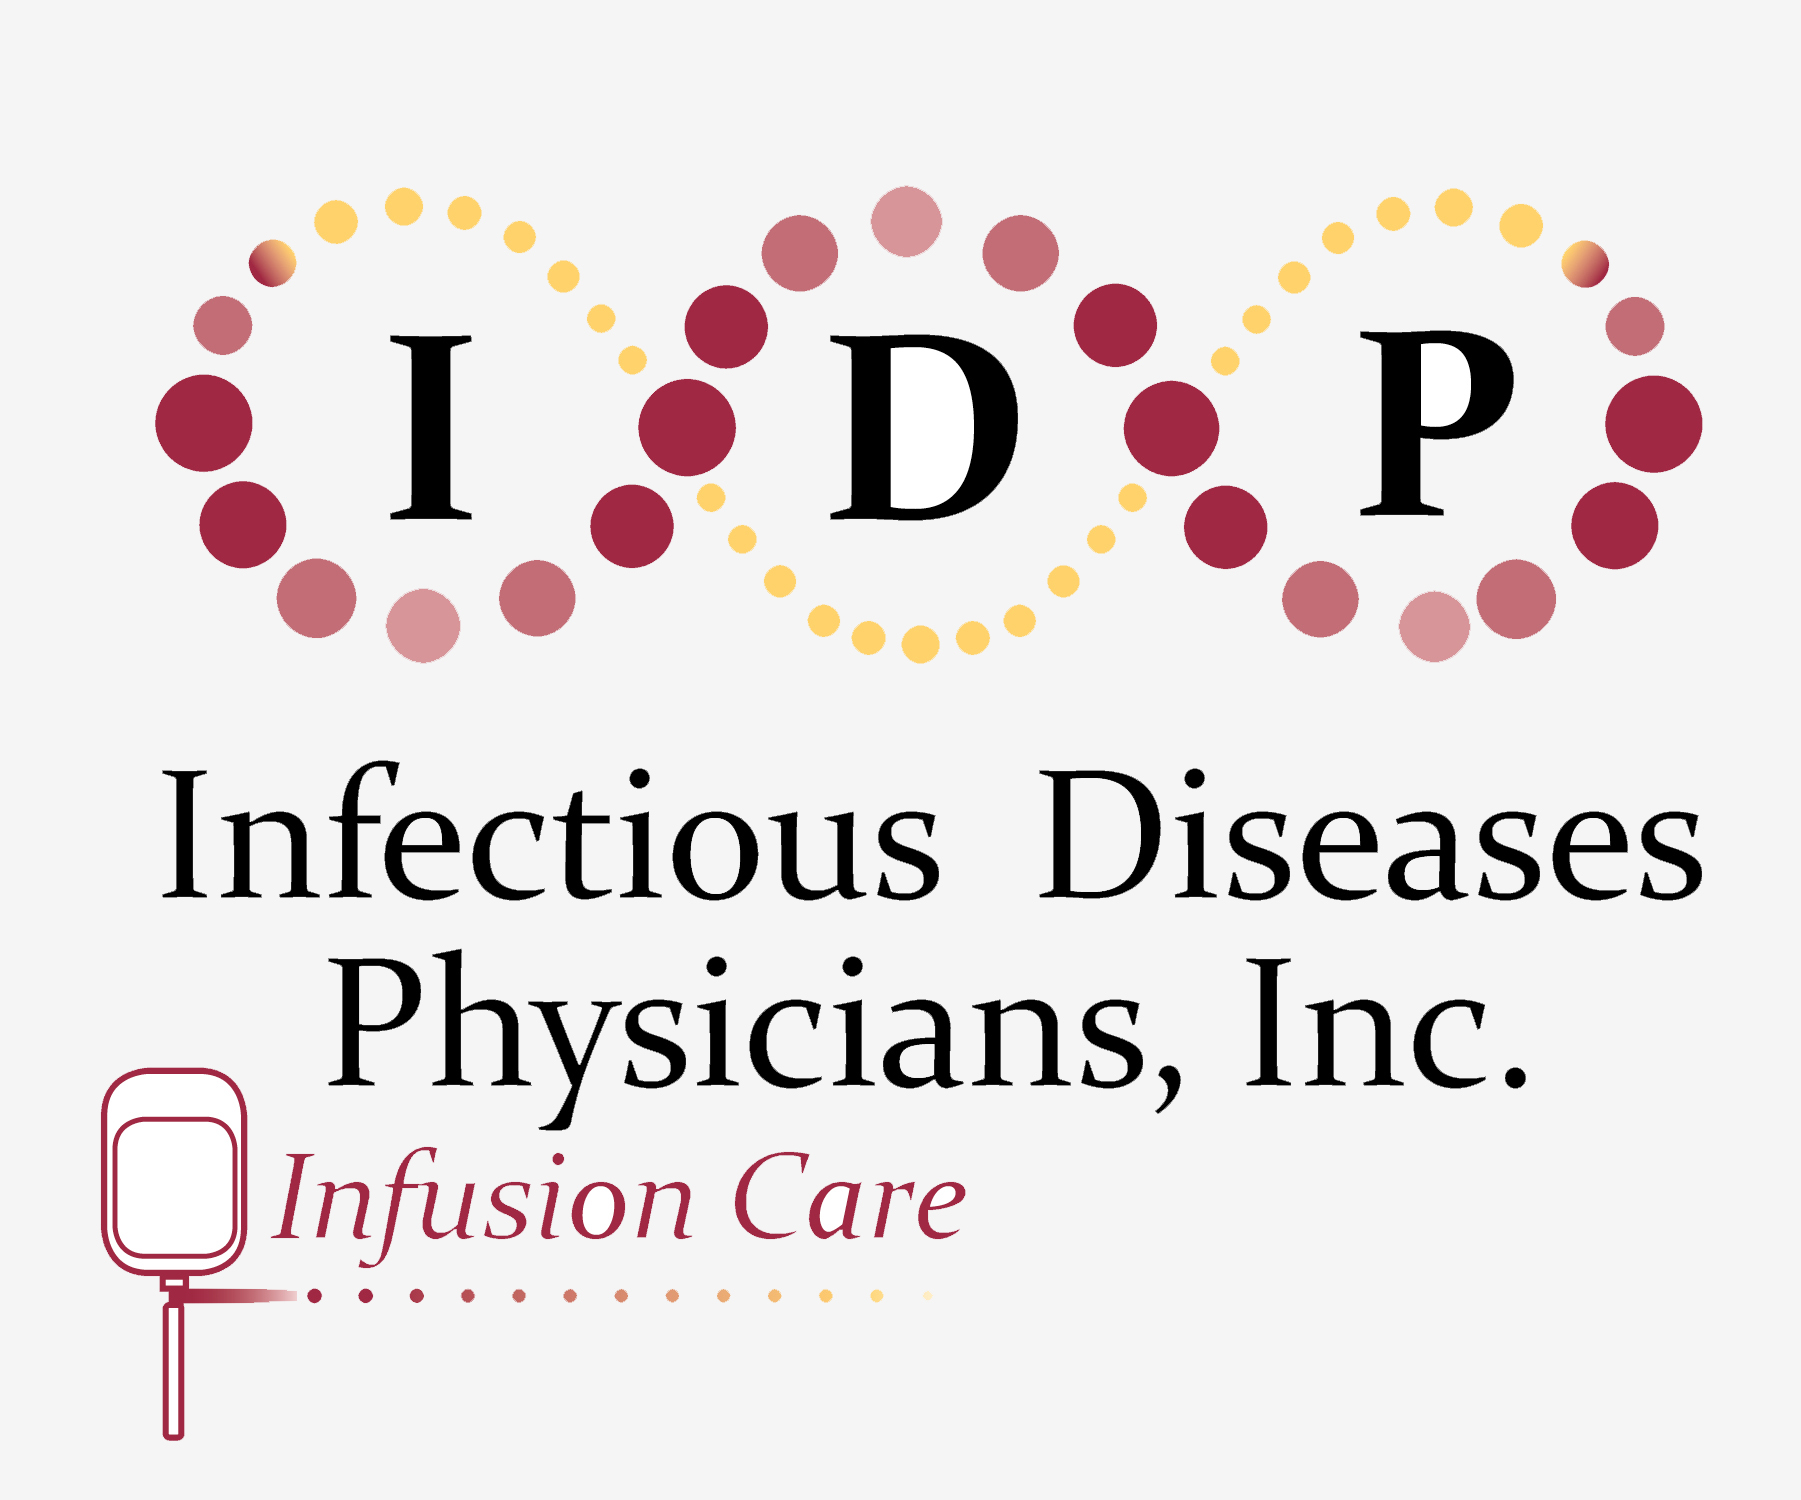 Infectious Diseases Physicians